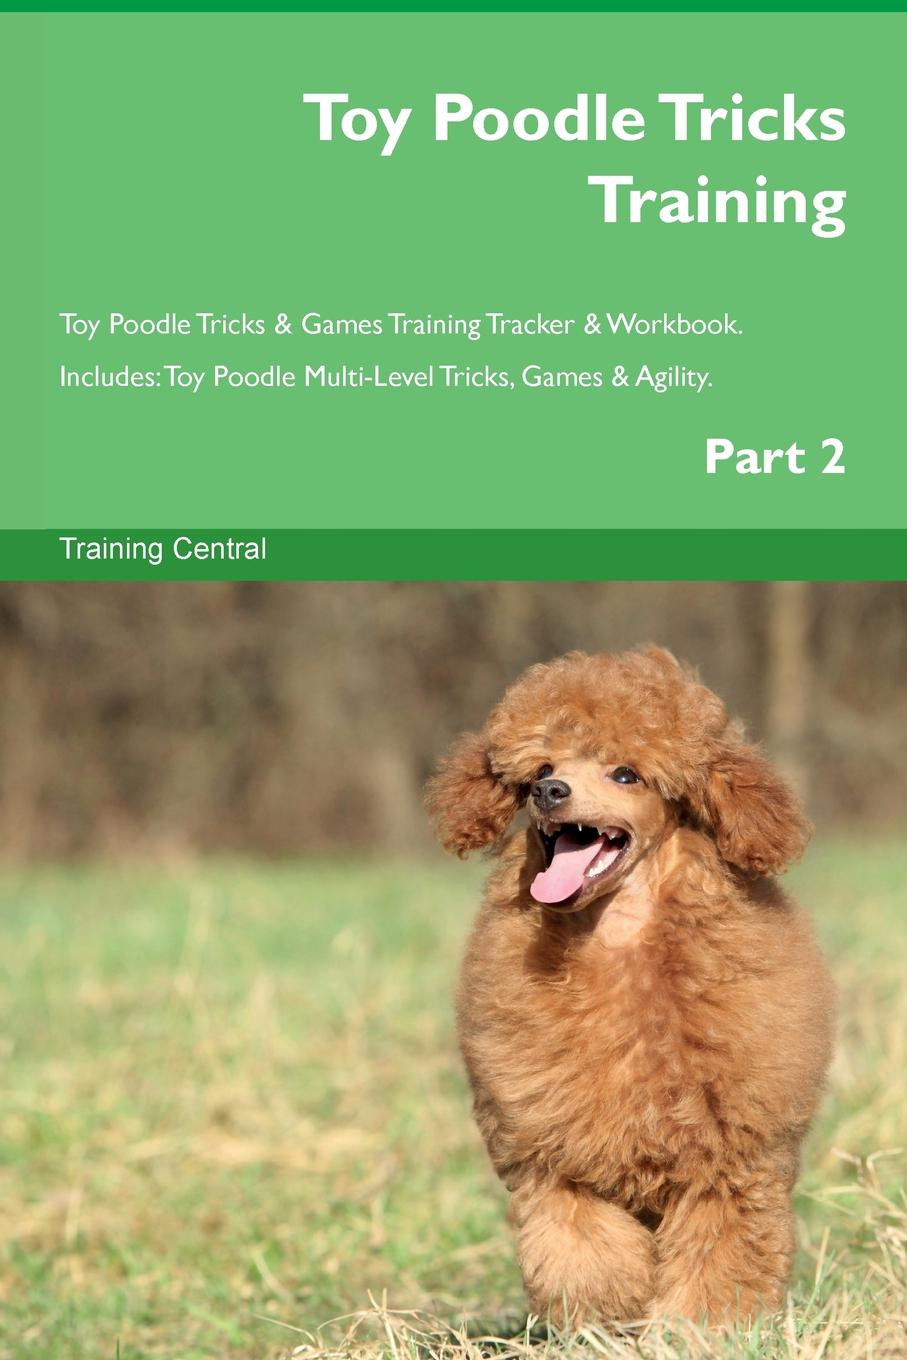 Training Central Toy Poodle Tricks Training Toy Poodle Tricks . Games Training Tracker . Workbook. Includes. Toy Poodle Multi-Level Tricks, Games . Agility. Part 2 candice guo plush toy stuffed doll cute verisimilitude poodle cute teddy dog puppy soft creative birthday gift christmas present